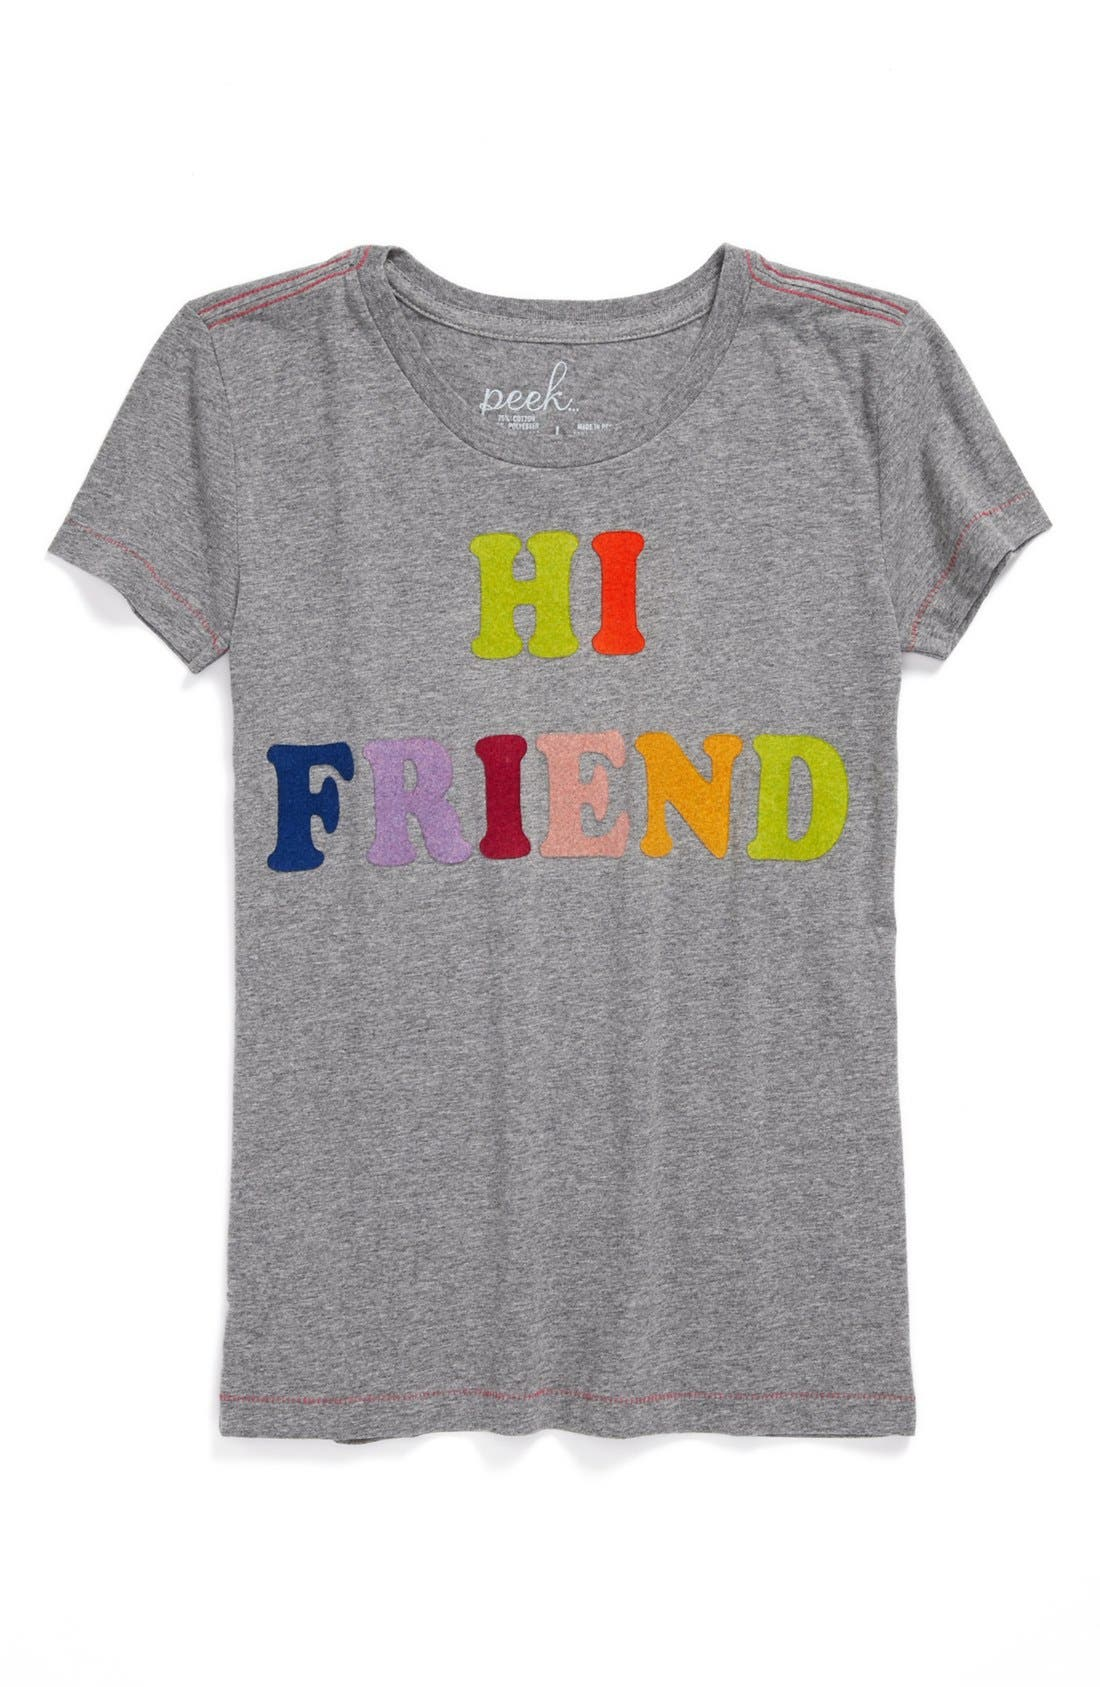 Alternate Image 1 Selected - Peek 'Hi Friend' Tee (Toddler Girls, Little Girls & Big Girls)